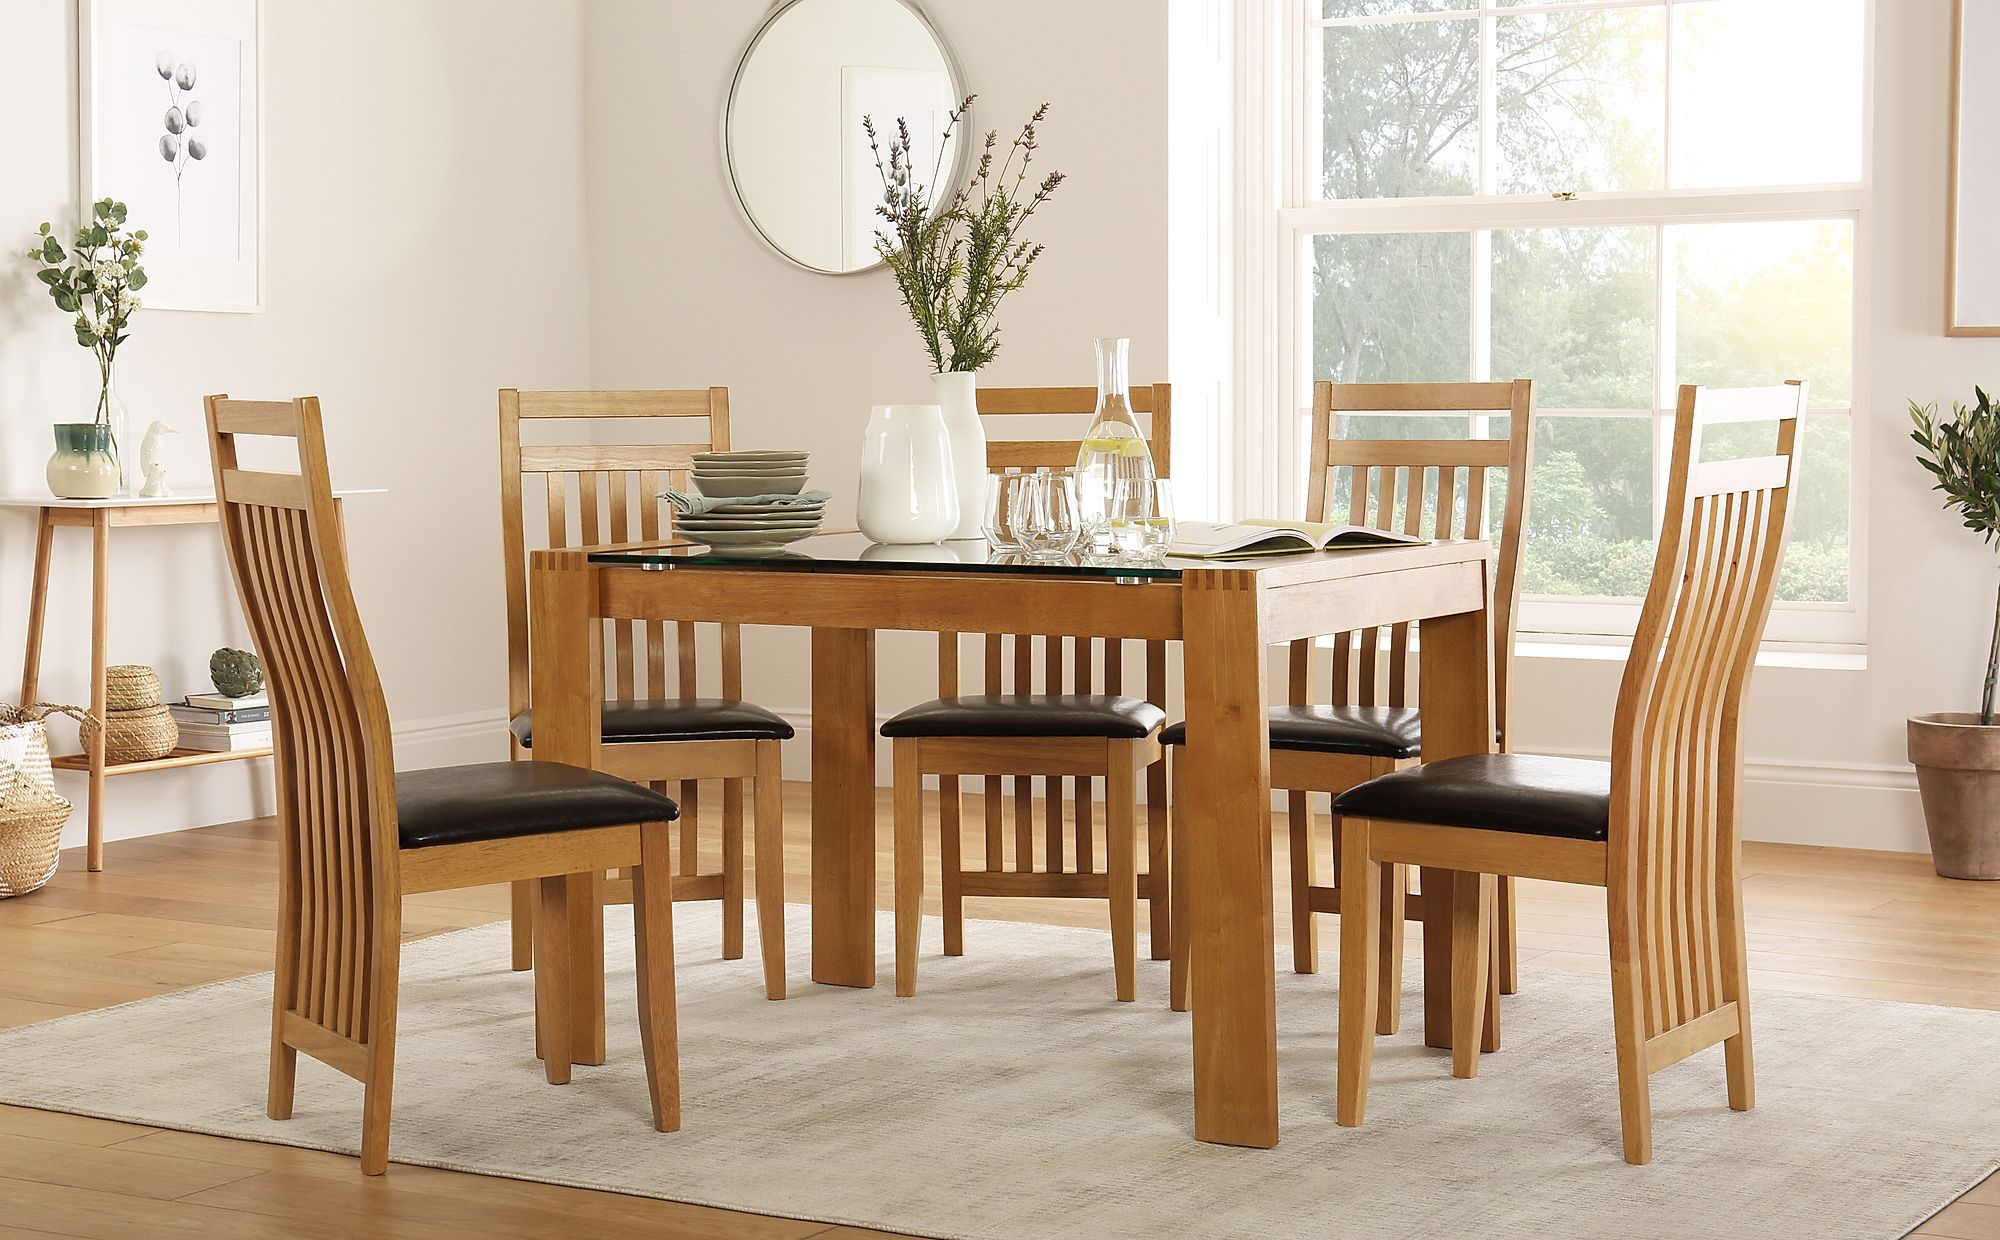 Tate 120cm Oak And Glass Dining Table With 4 Bali Chairs